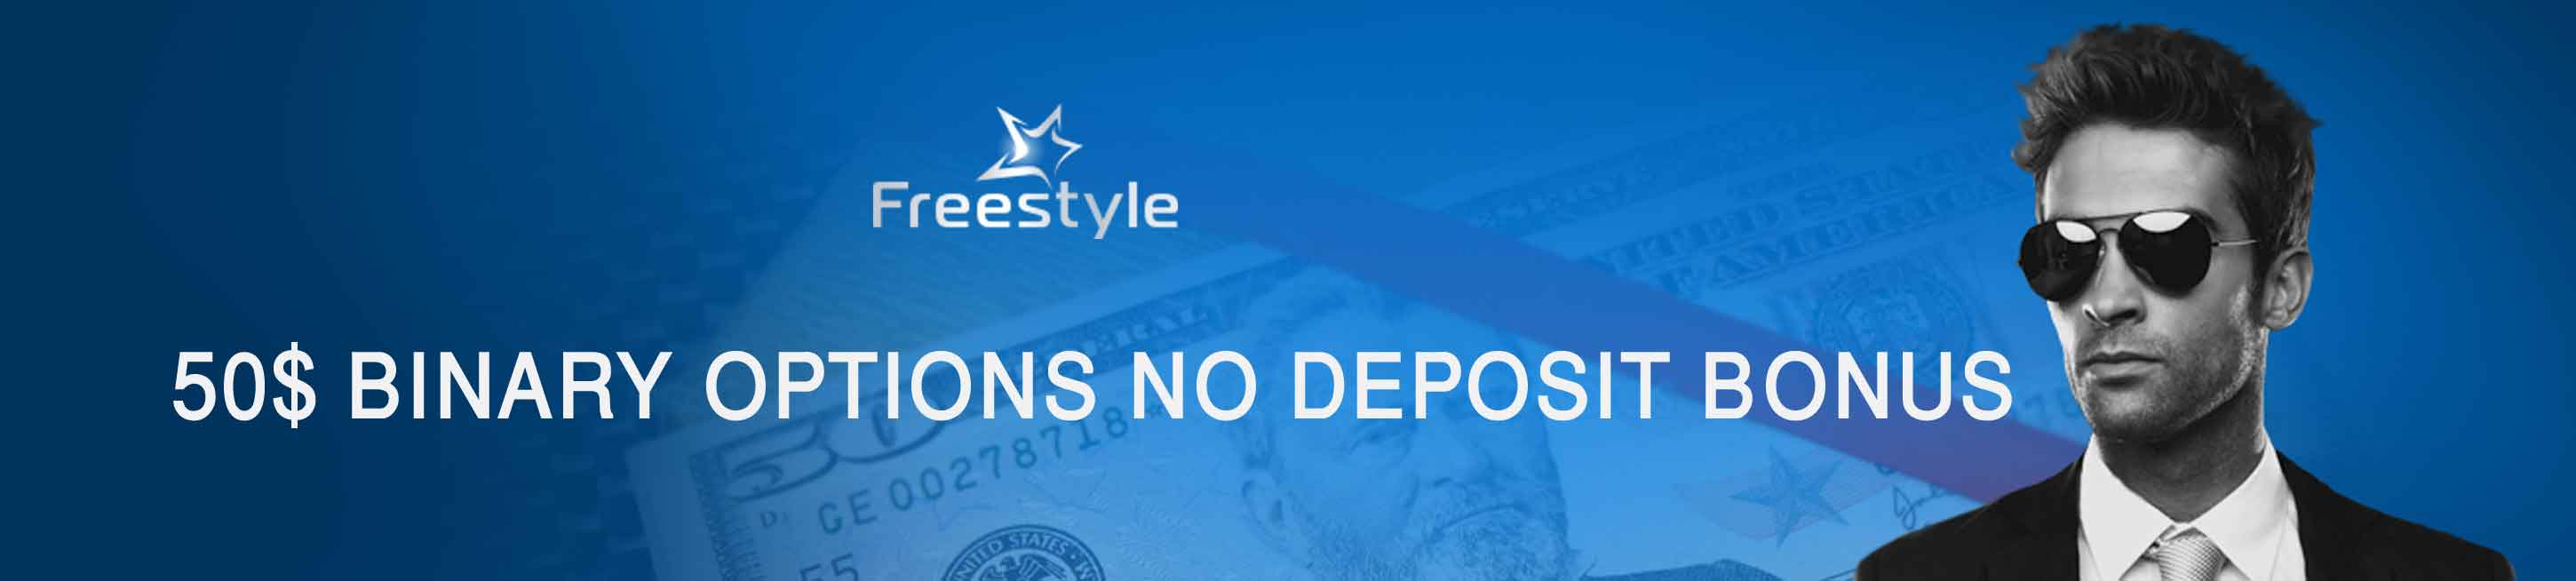 Free no deposit binary options bonus